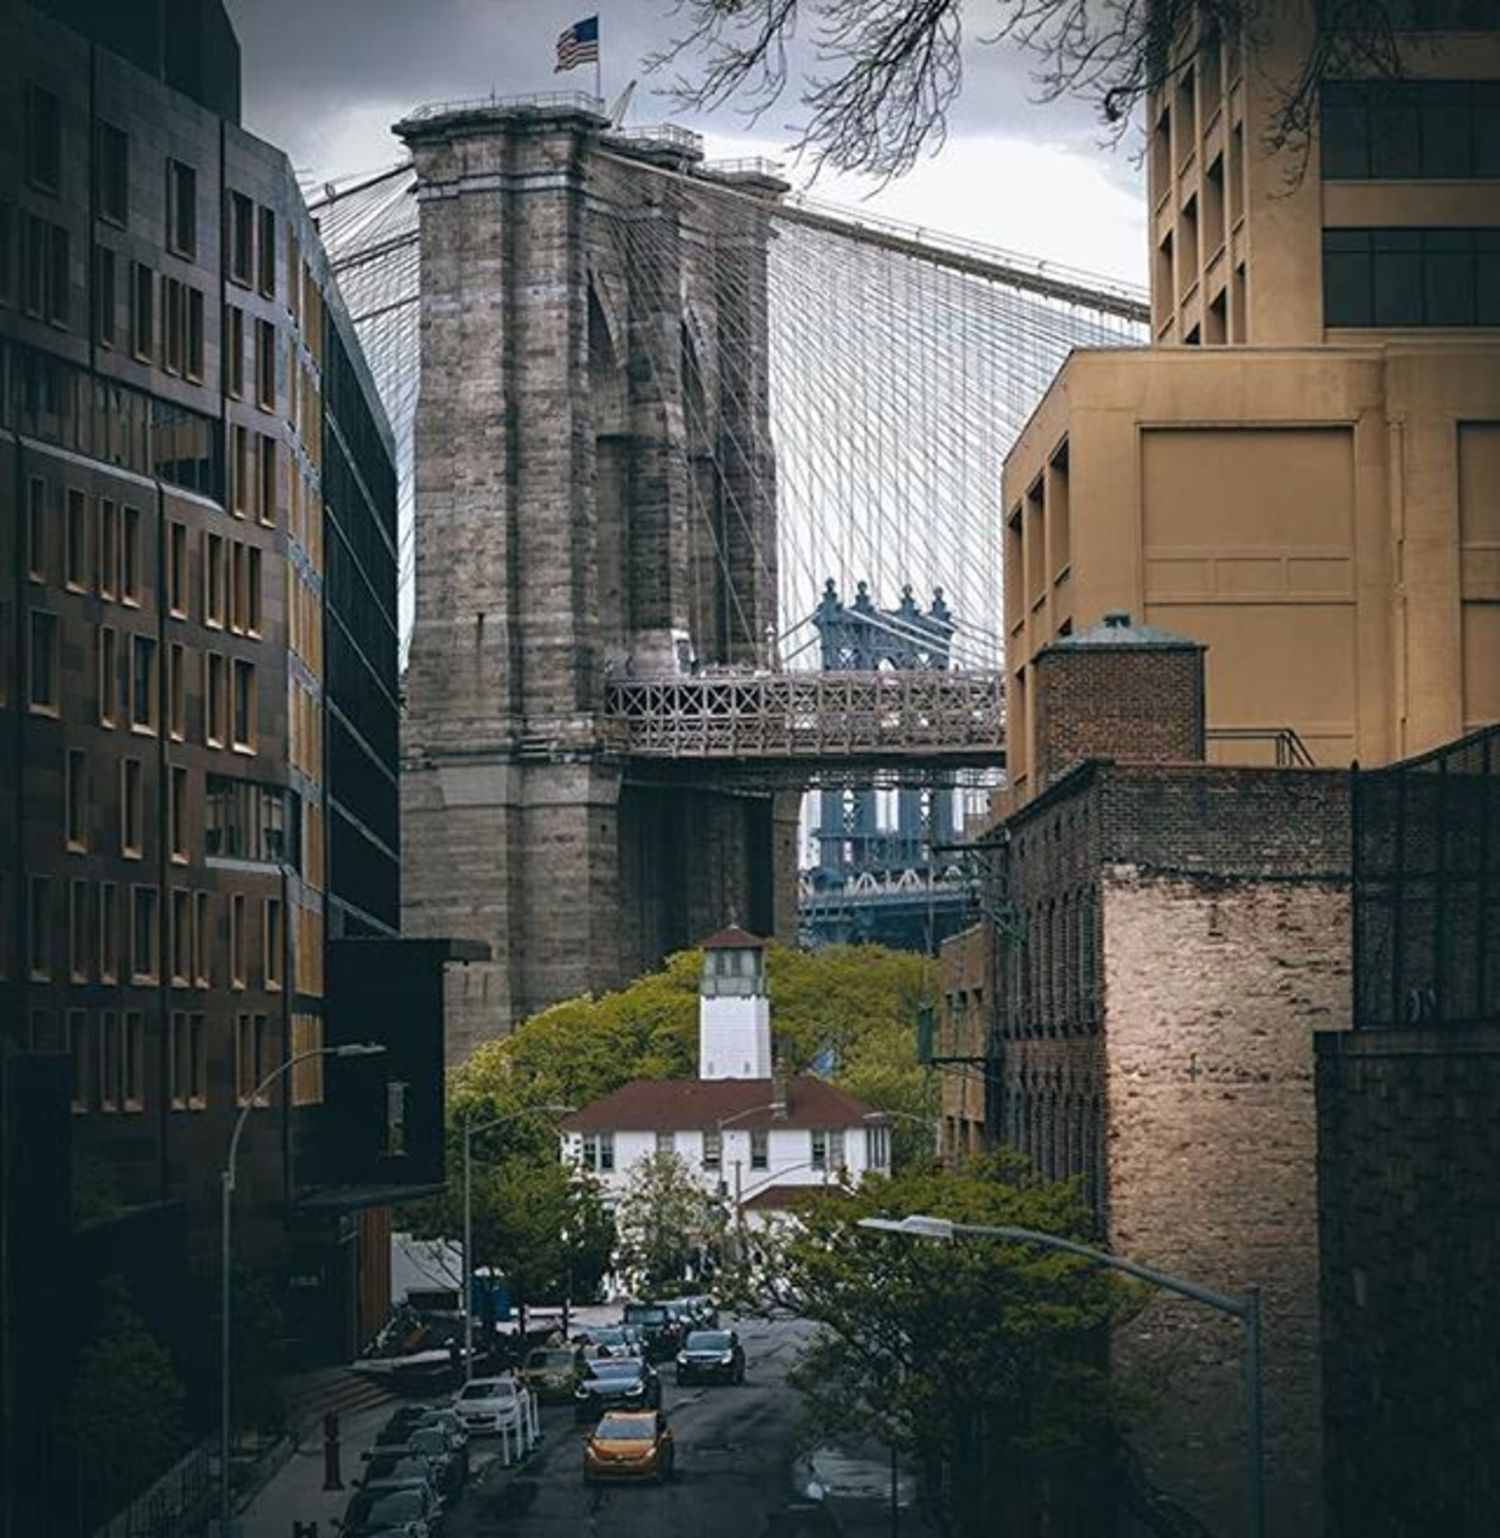 Brooklyn Bridge. Photo via @bklyn_block #viewingnyc